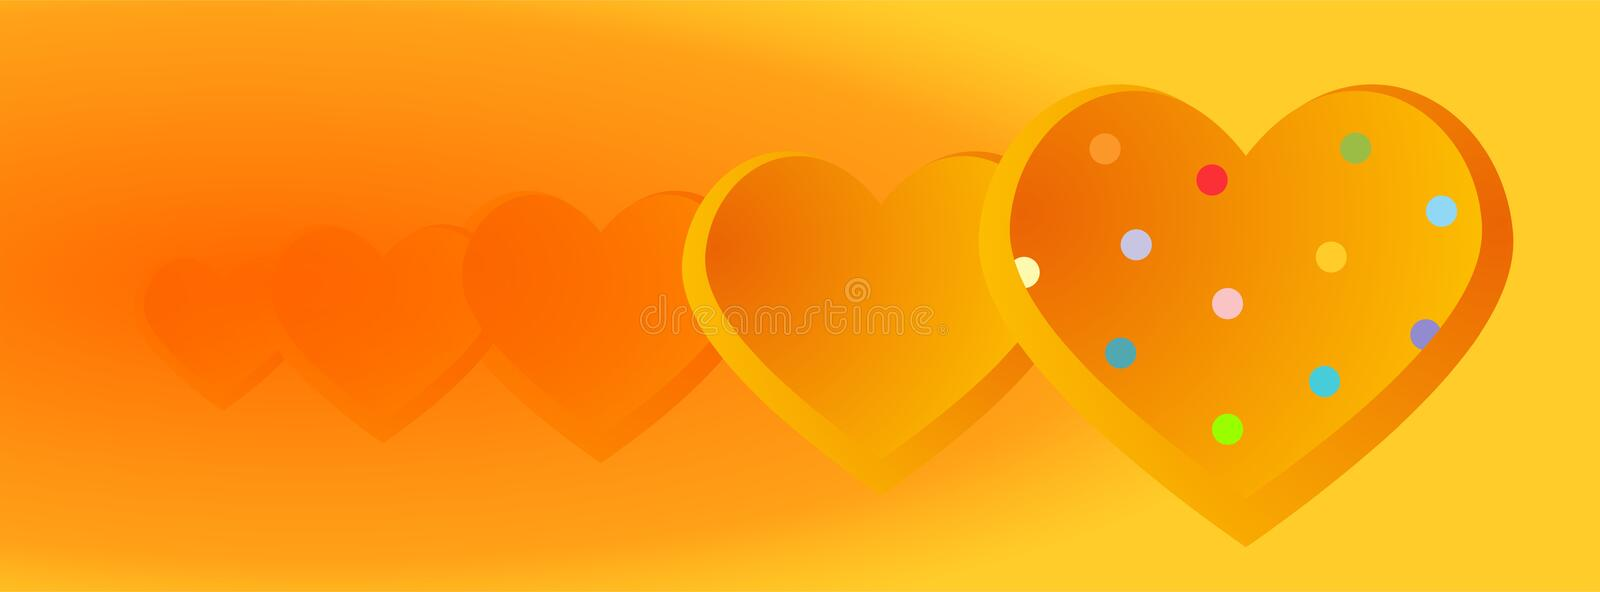 Valentine banners with Polka Dots hearts  - Facebook cover, -vector royalty free illustration